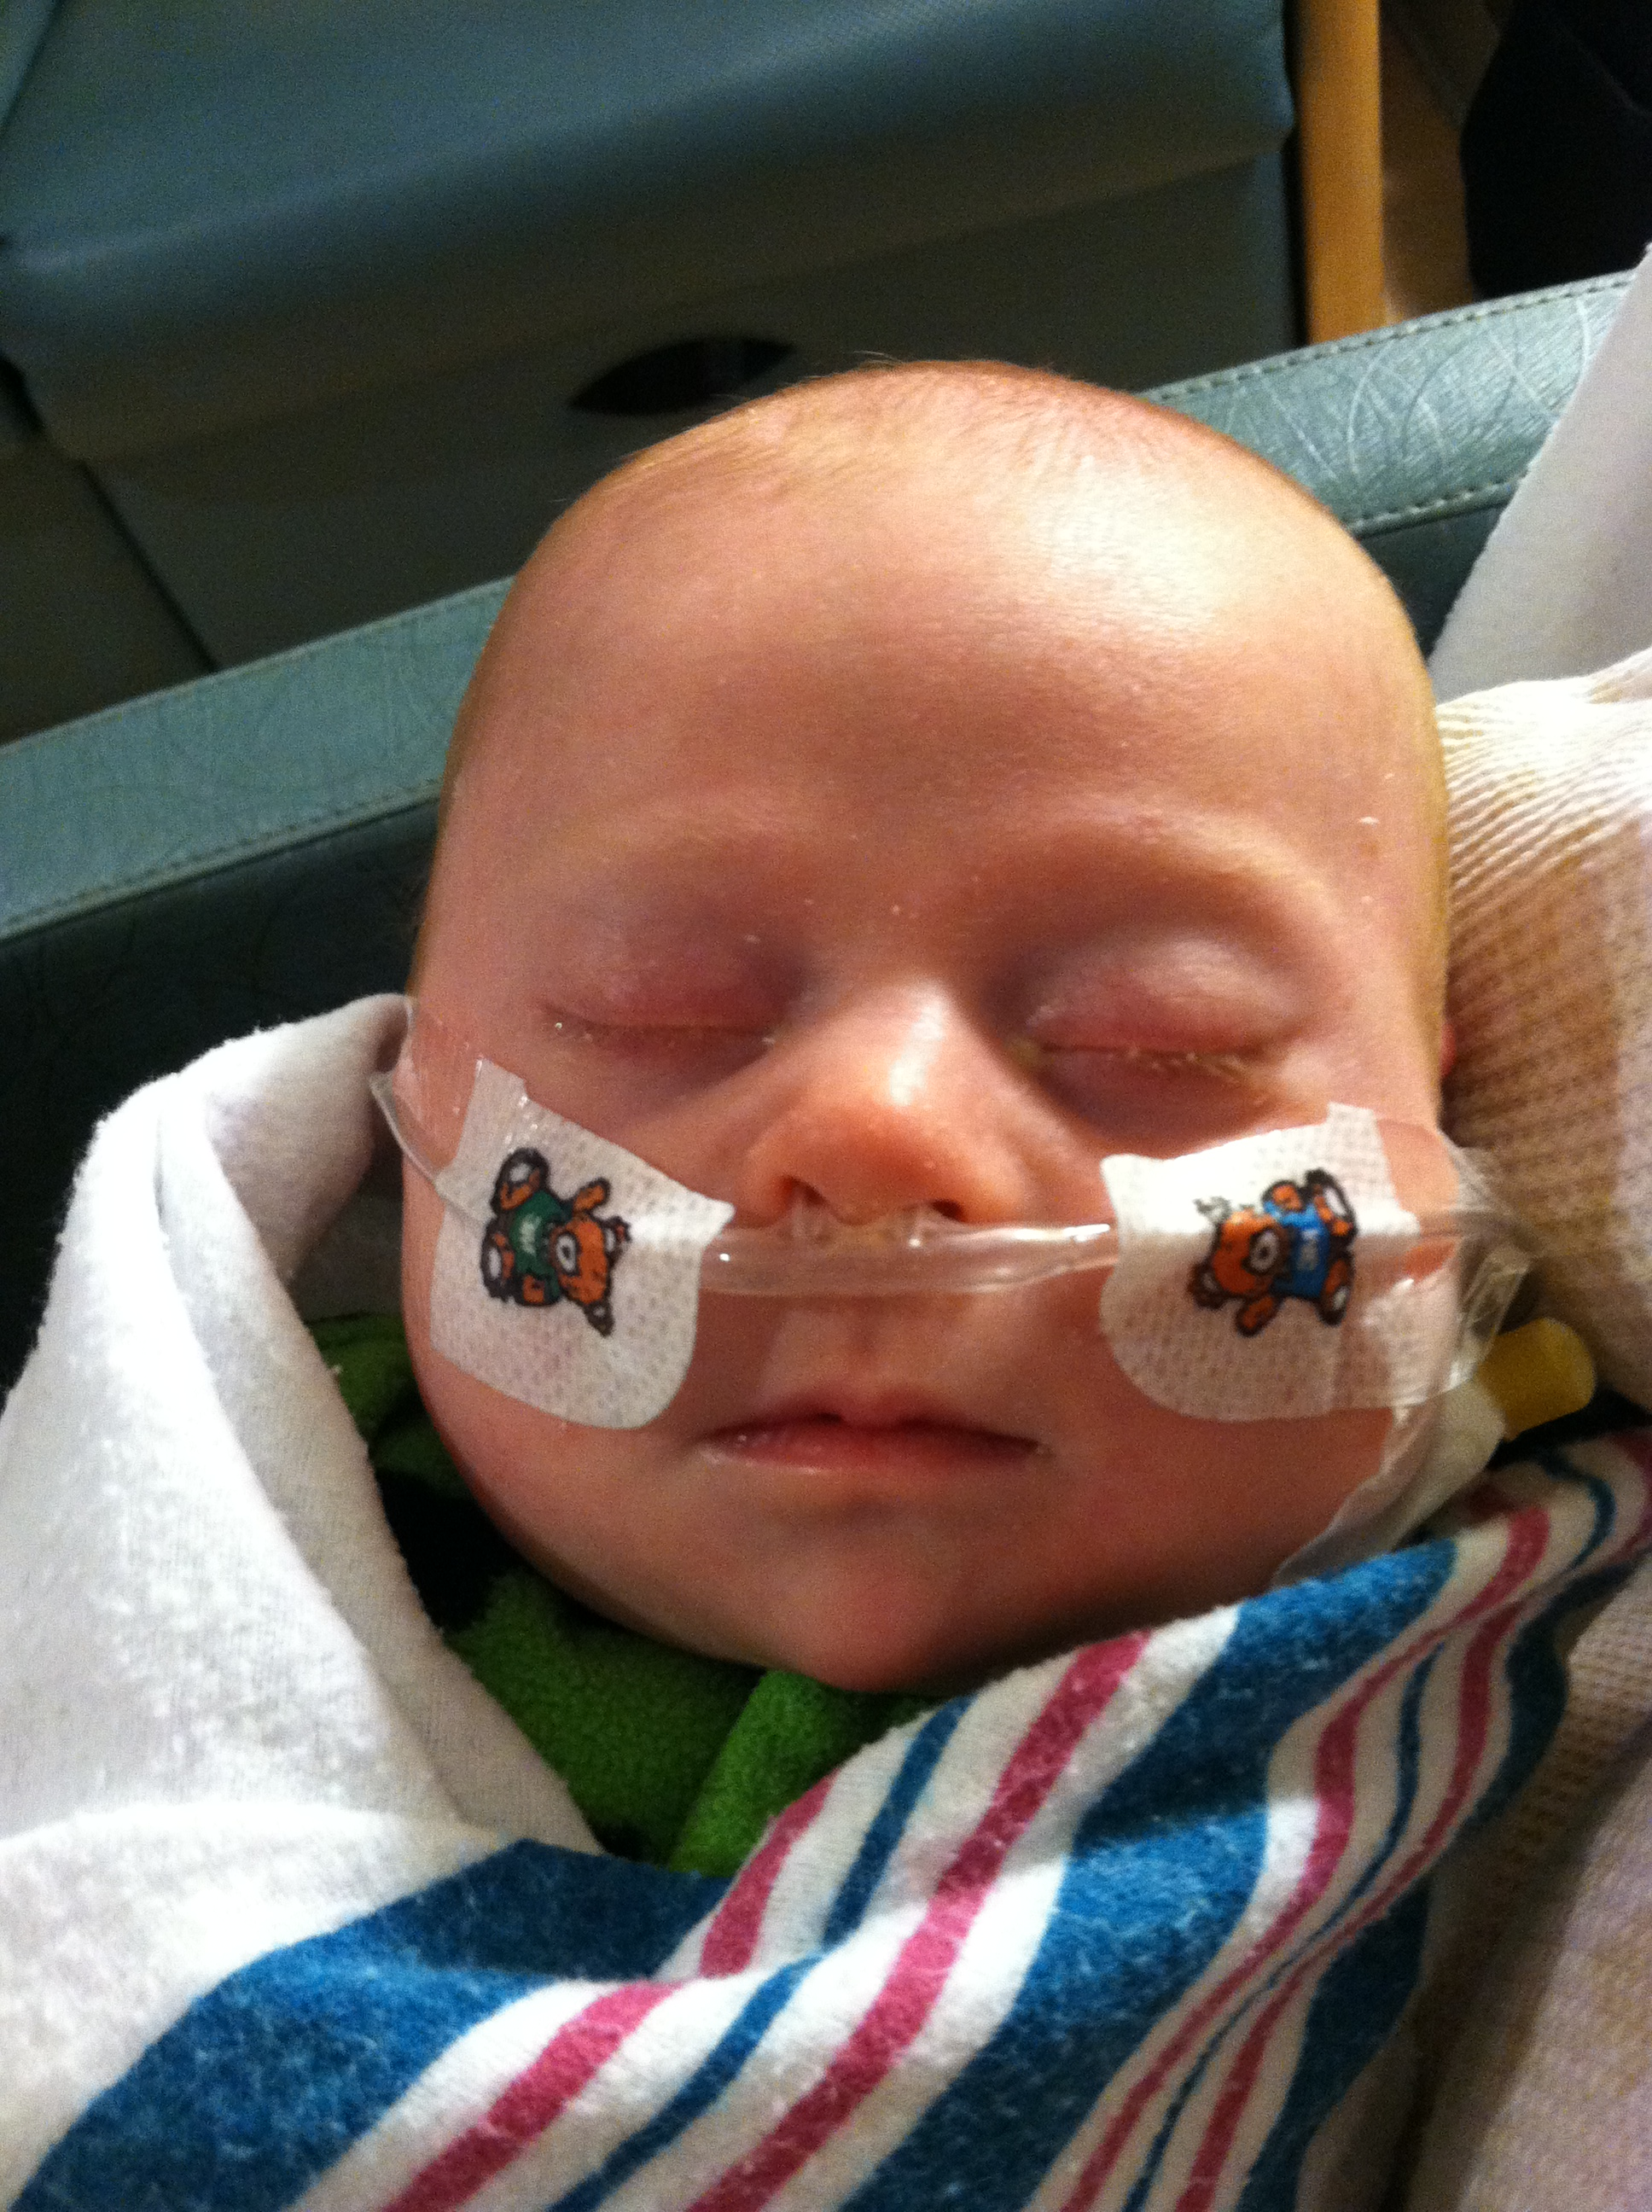 baby with down syndrome with breathing tube in